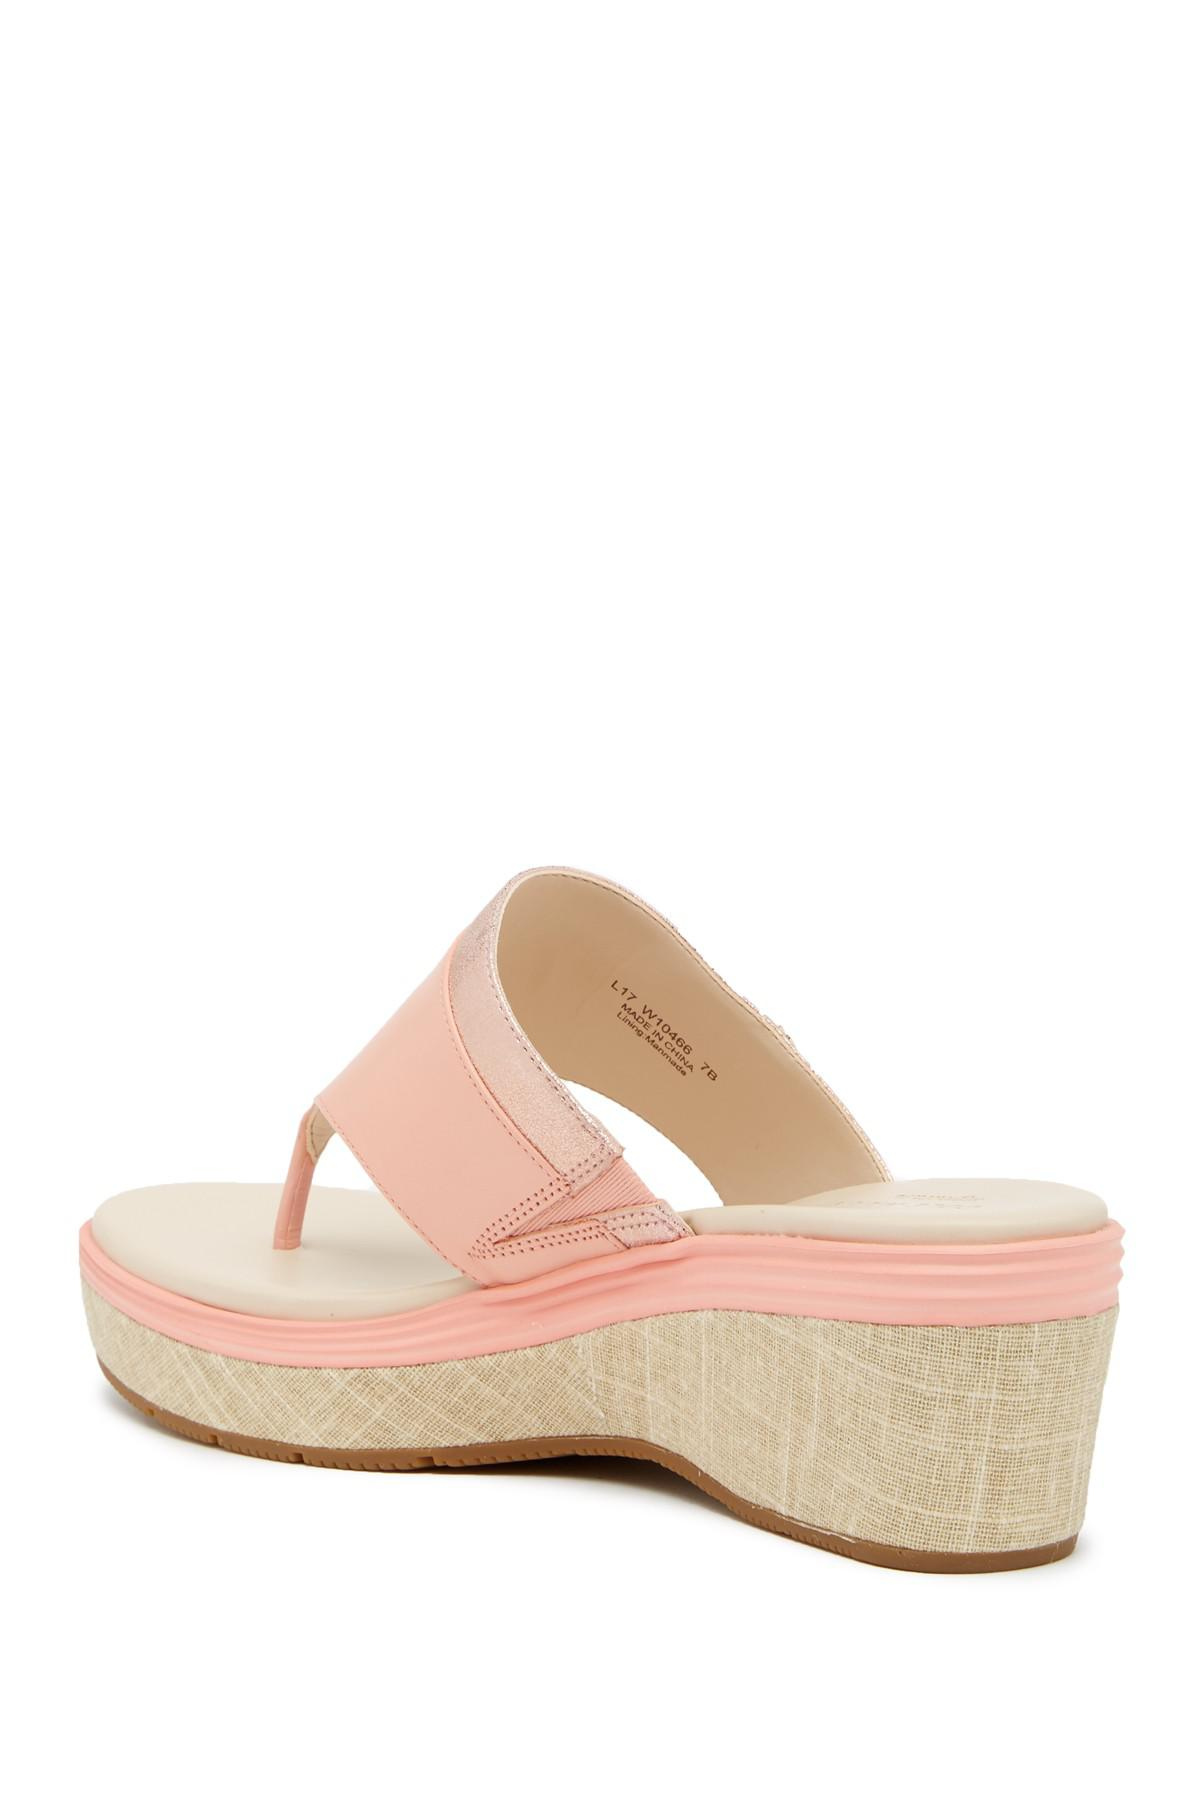 17ef15430f3 Cole Haan - Pink Cecily Grand Thong Sandal - Lyst. View fullscreen